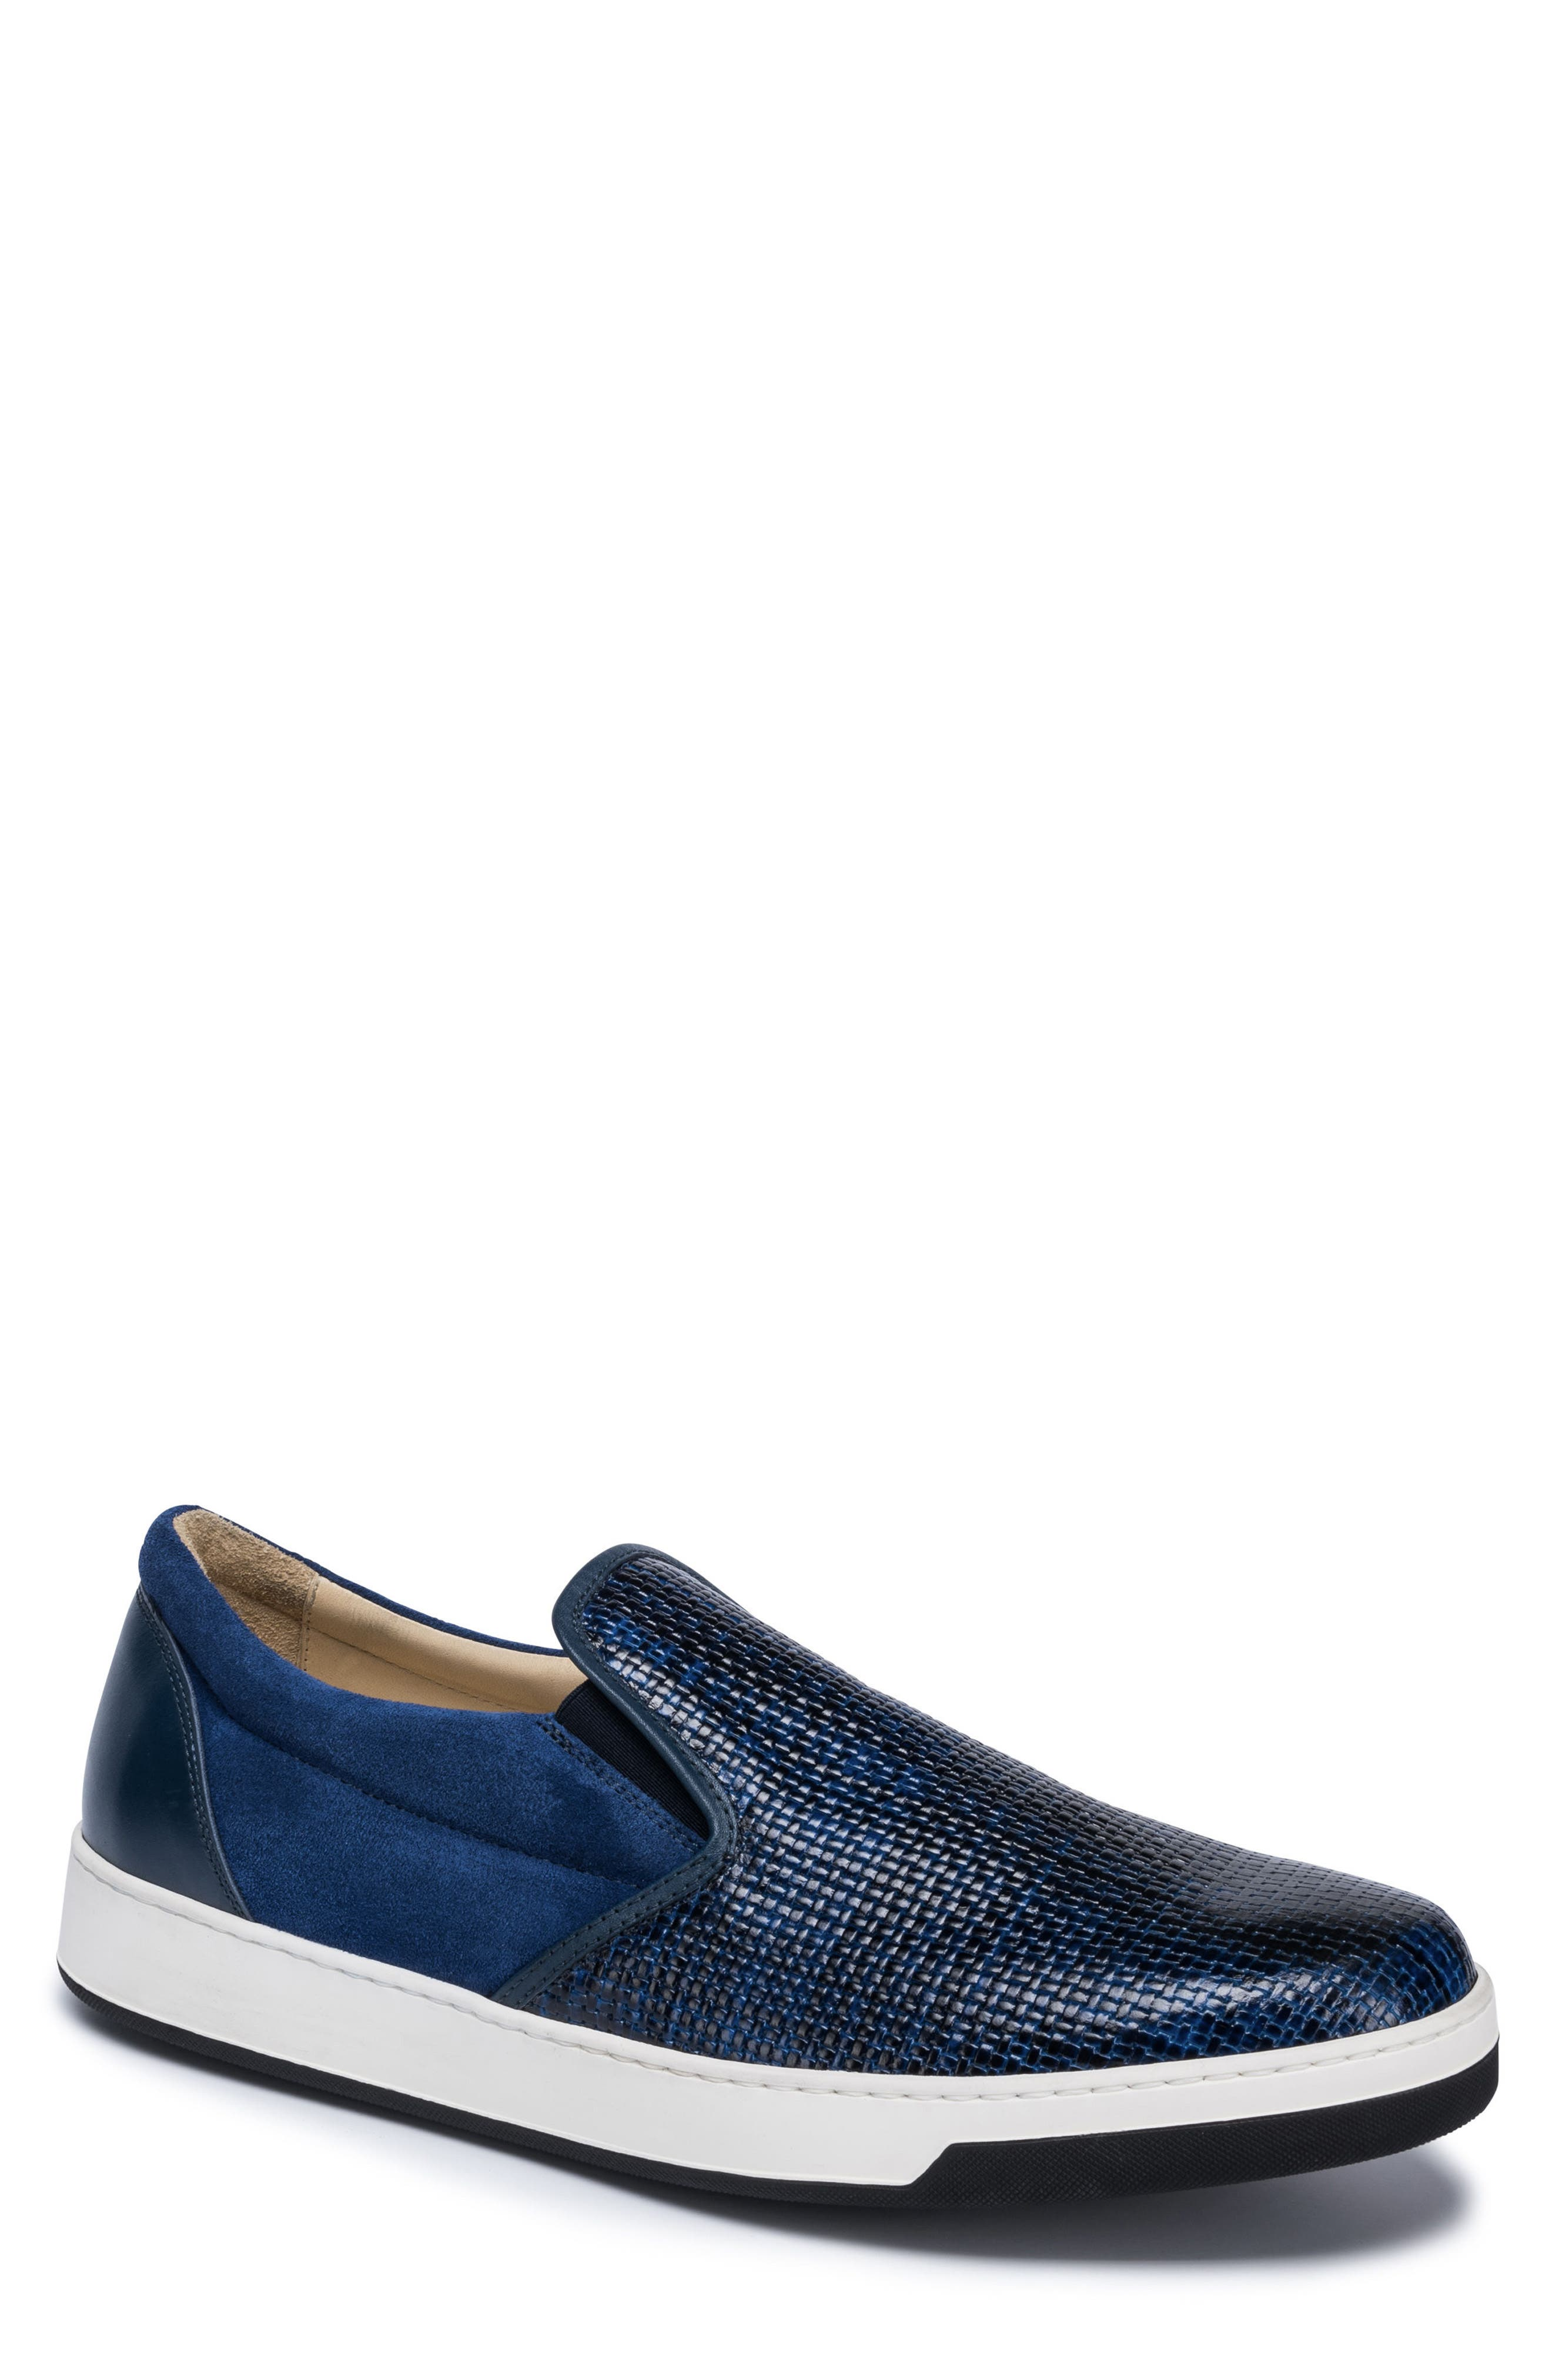 Cinque Terre Woven Slip-On Sneaker,                         Main,                         color, Blue Leather/ Suede